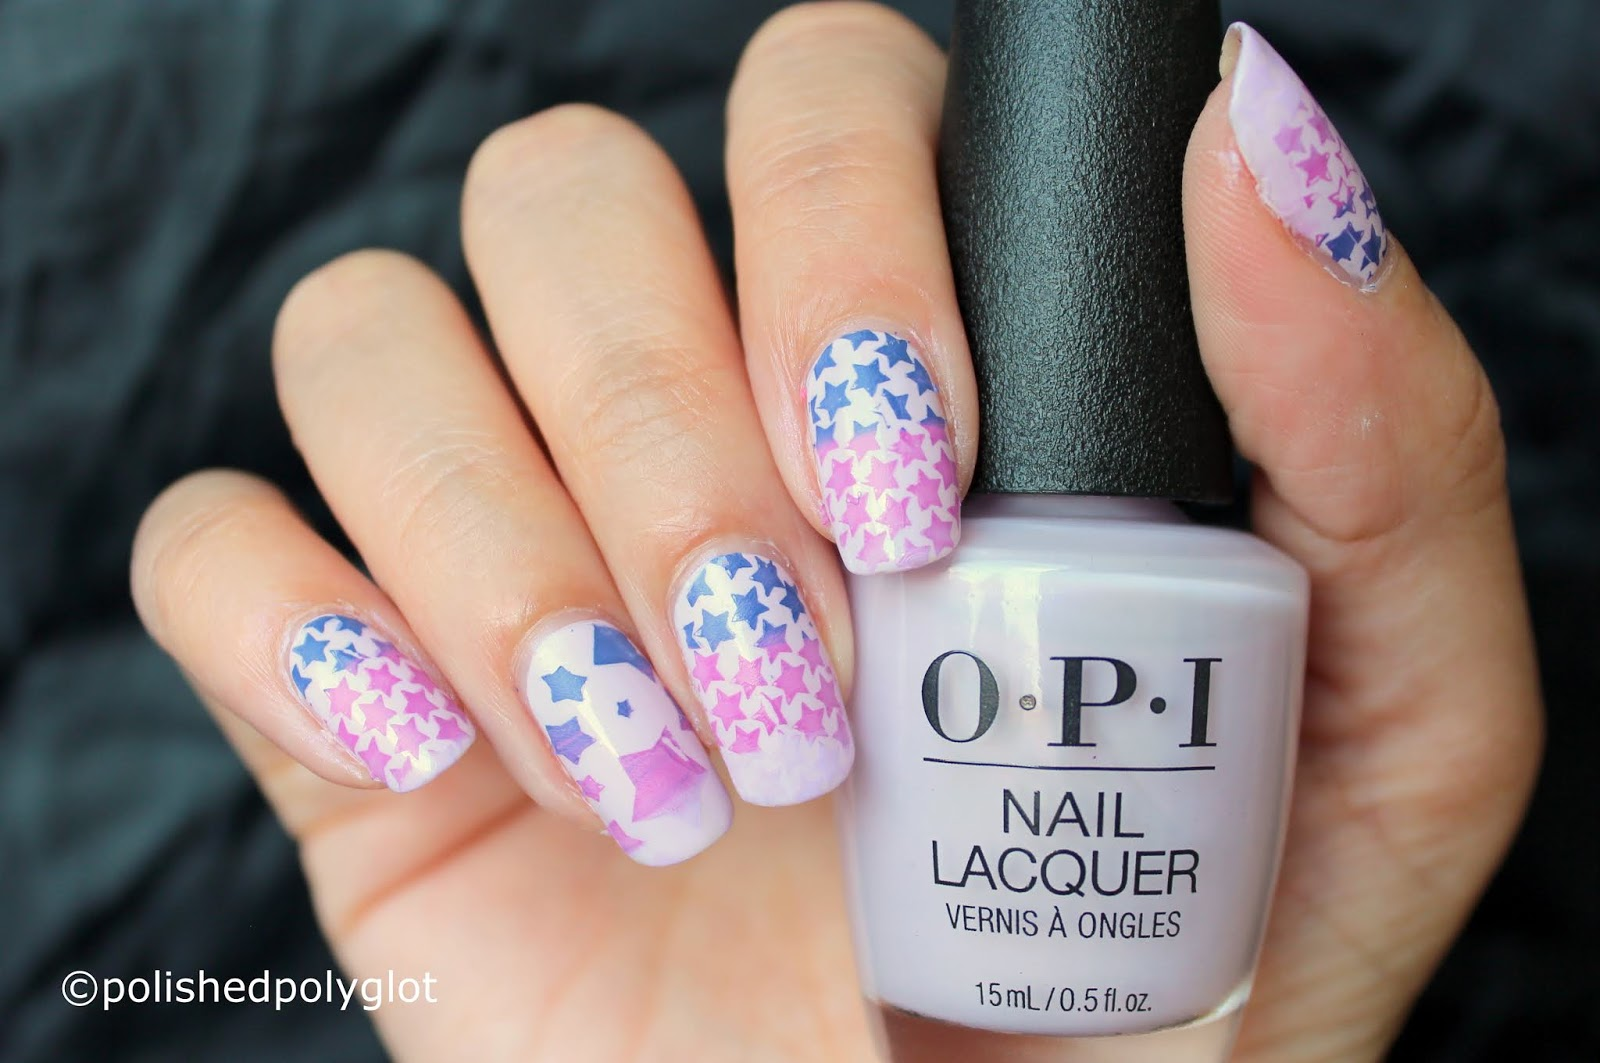 Nail Art │ Starry manicure in Lavender and Purple [26 Great Nail ...